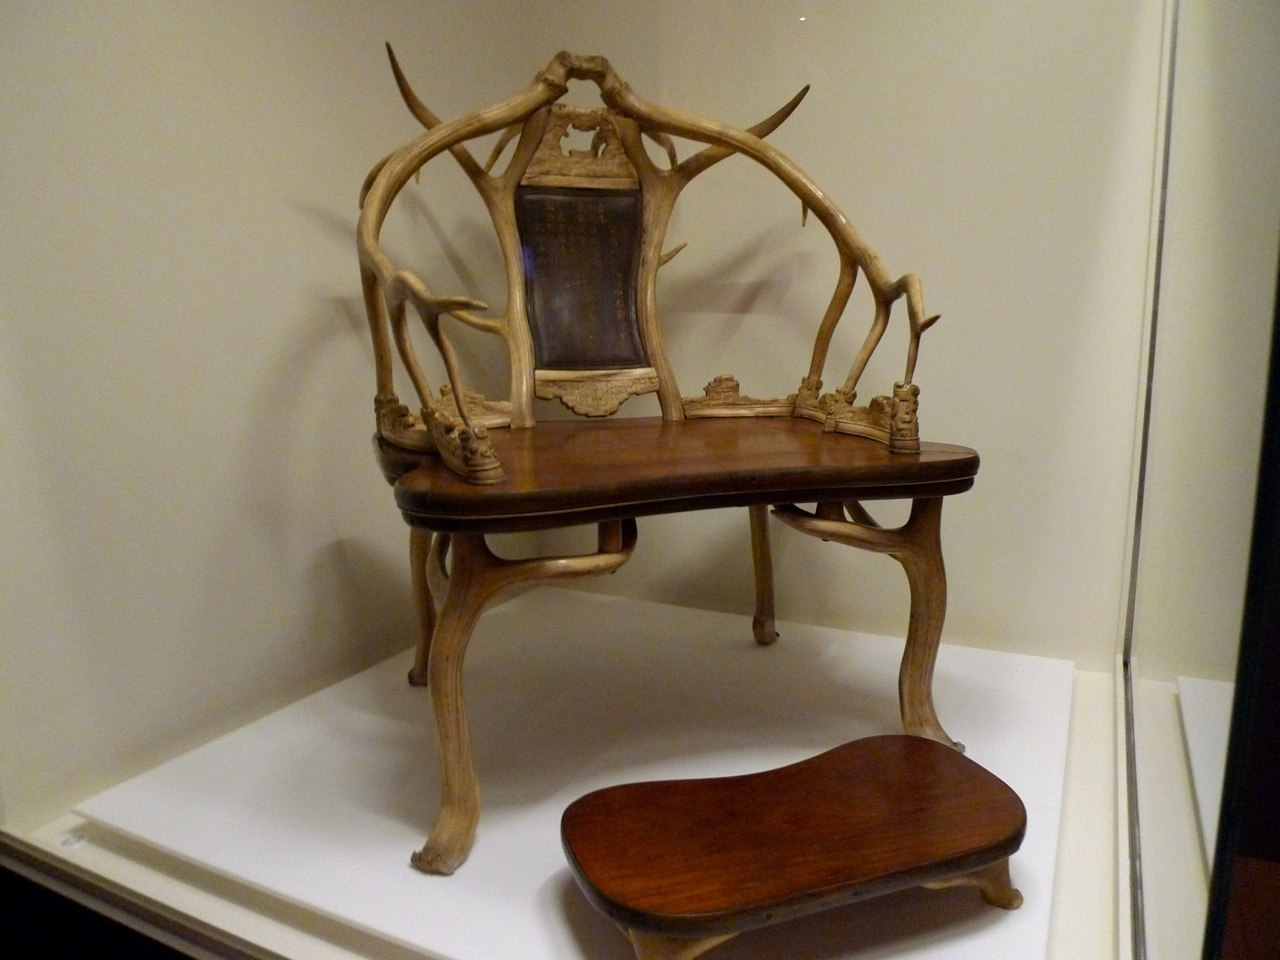 Deer antler arm chair with matching foot stool